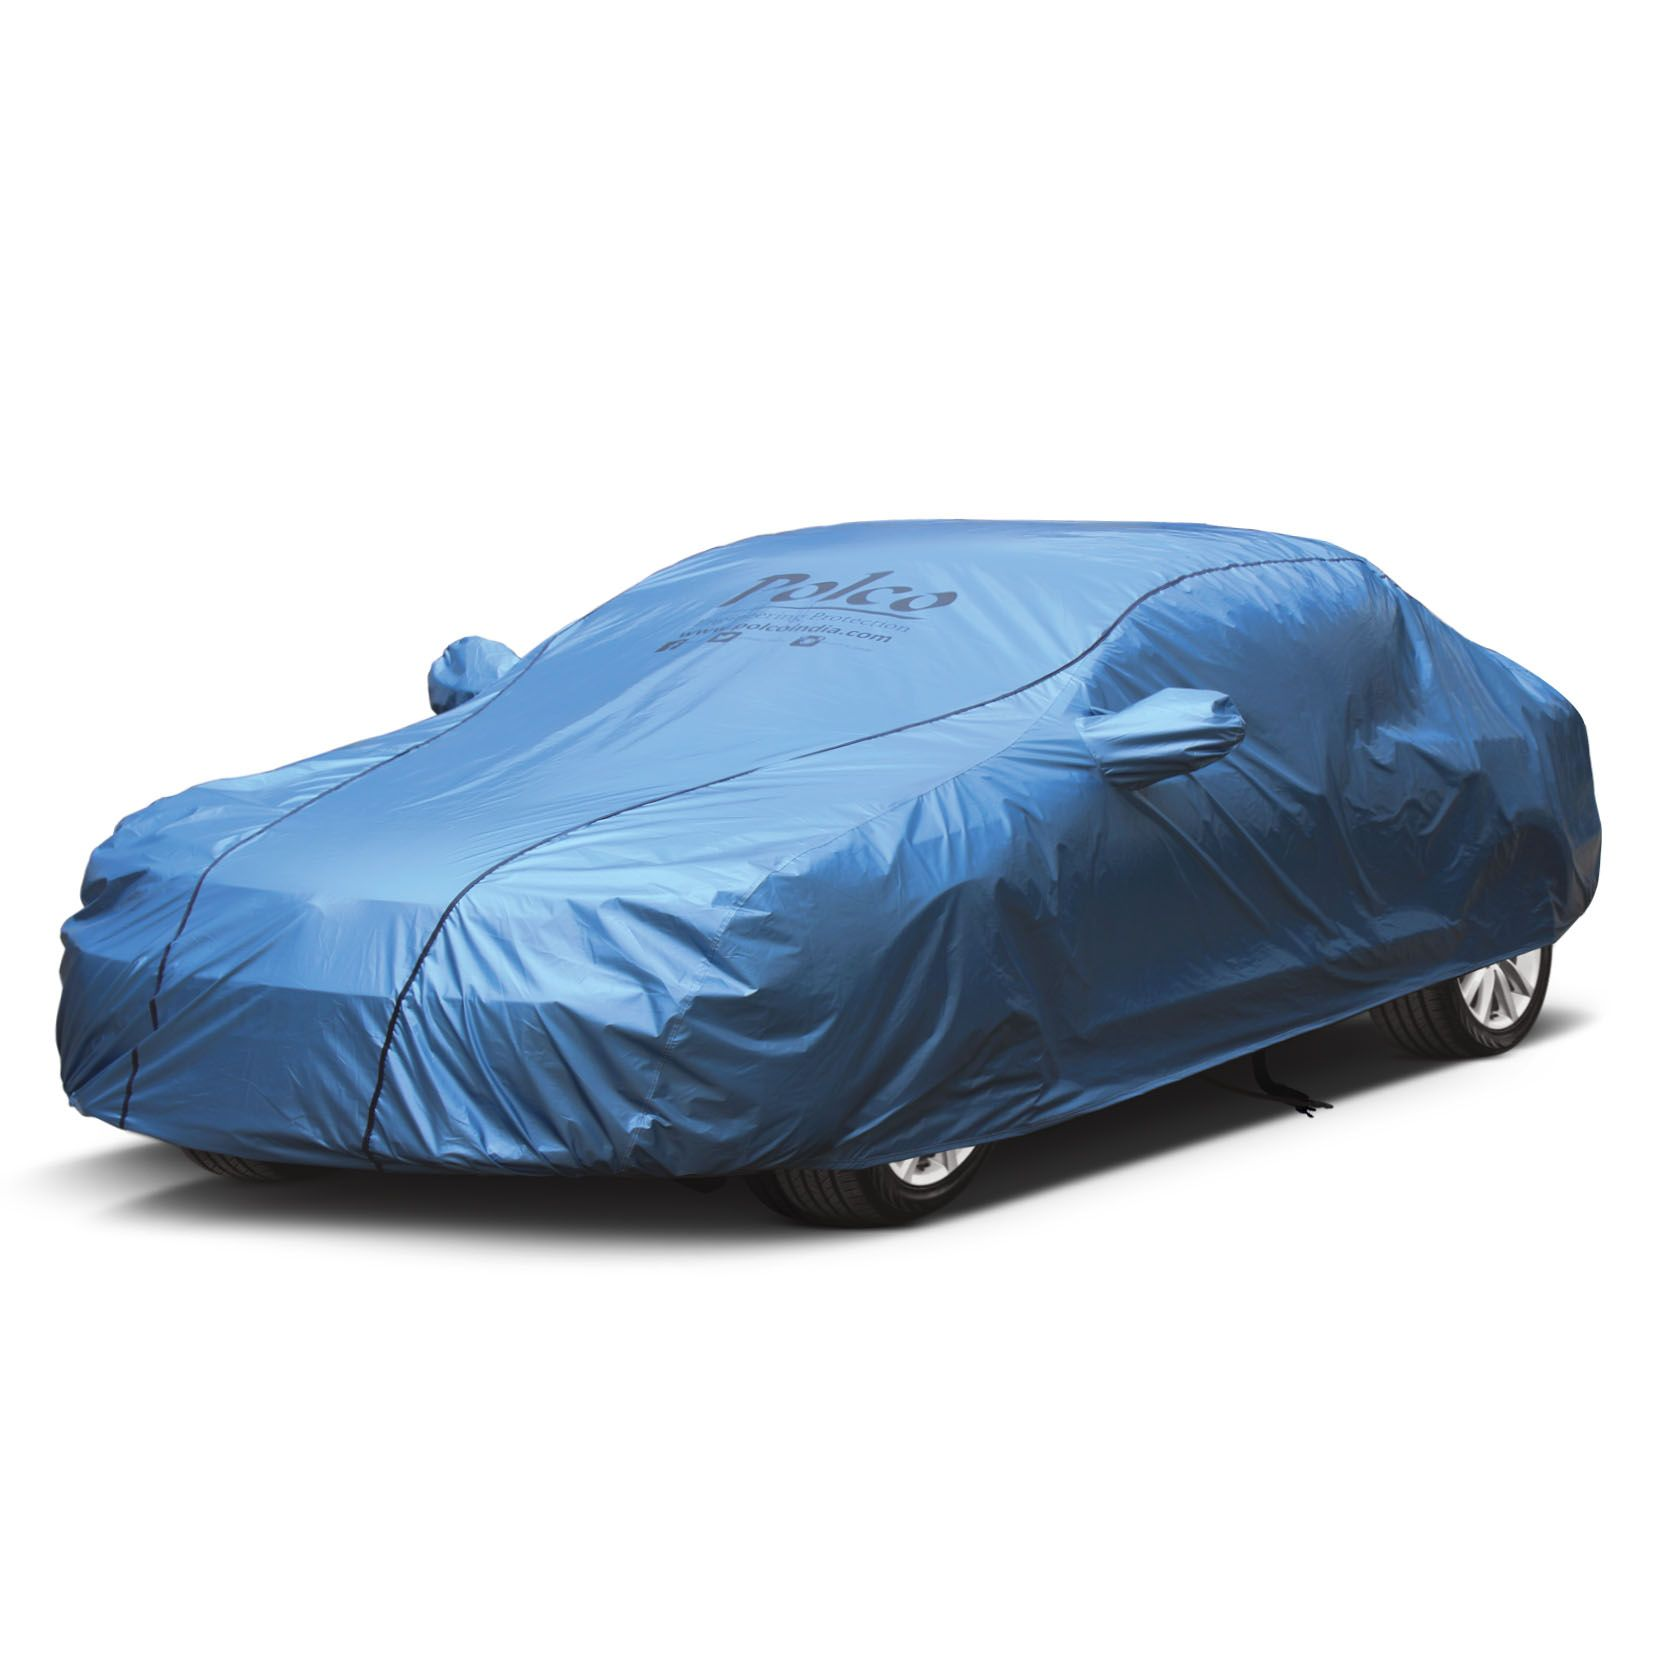 Polco Car Body Covers for Jaguar XJ Get free pair of side